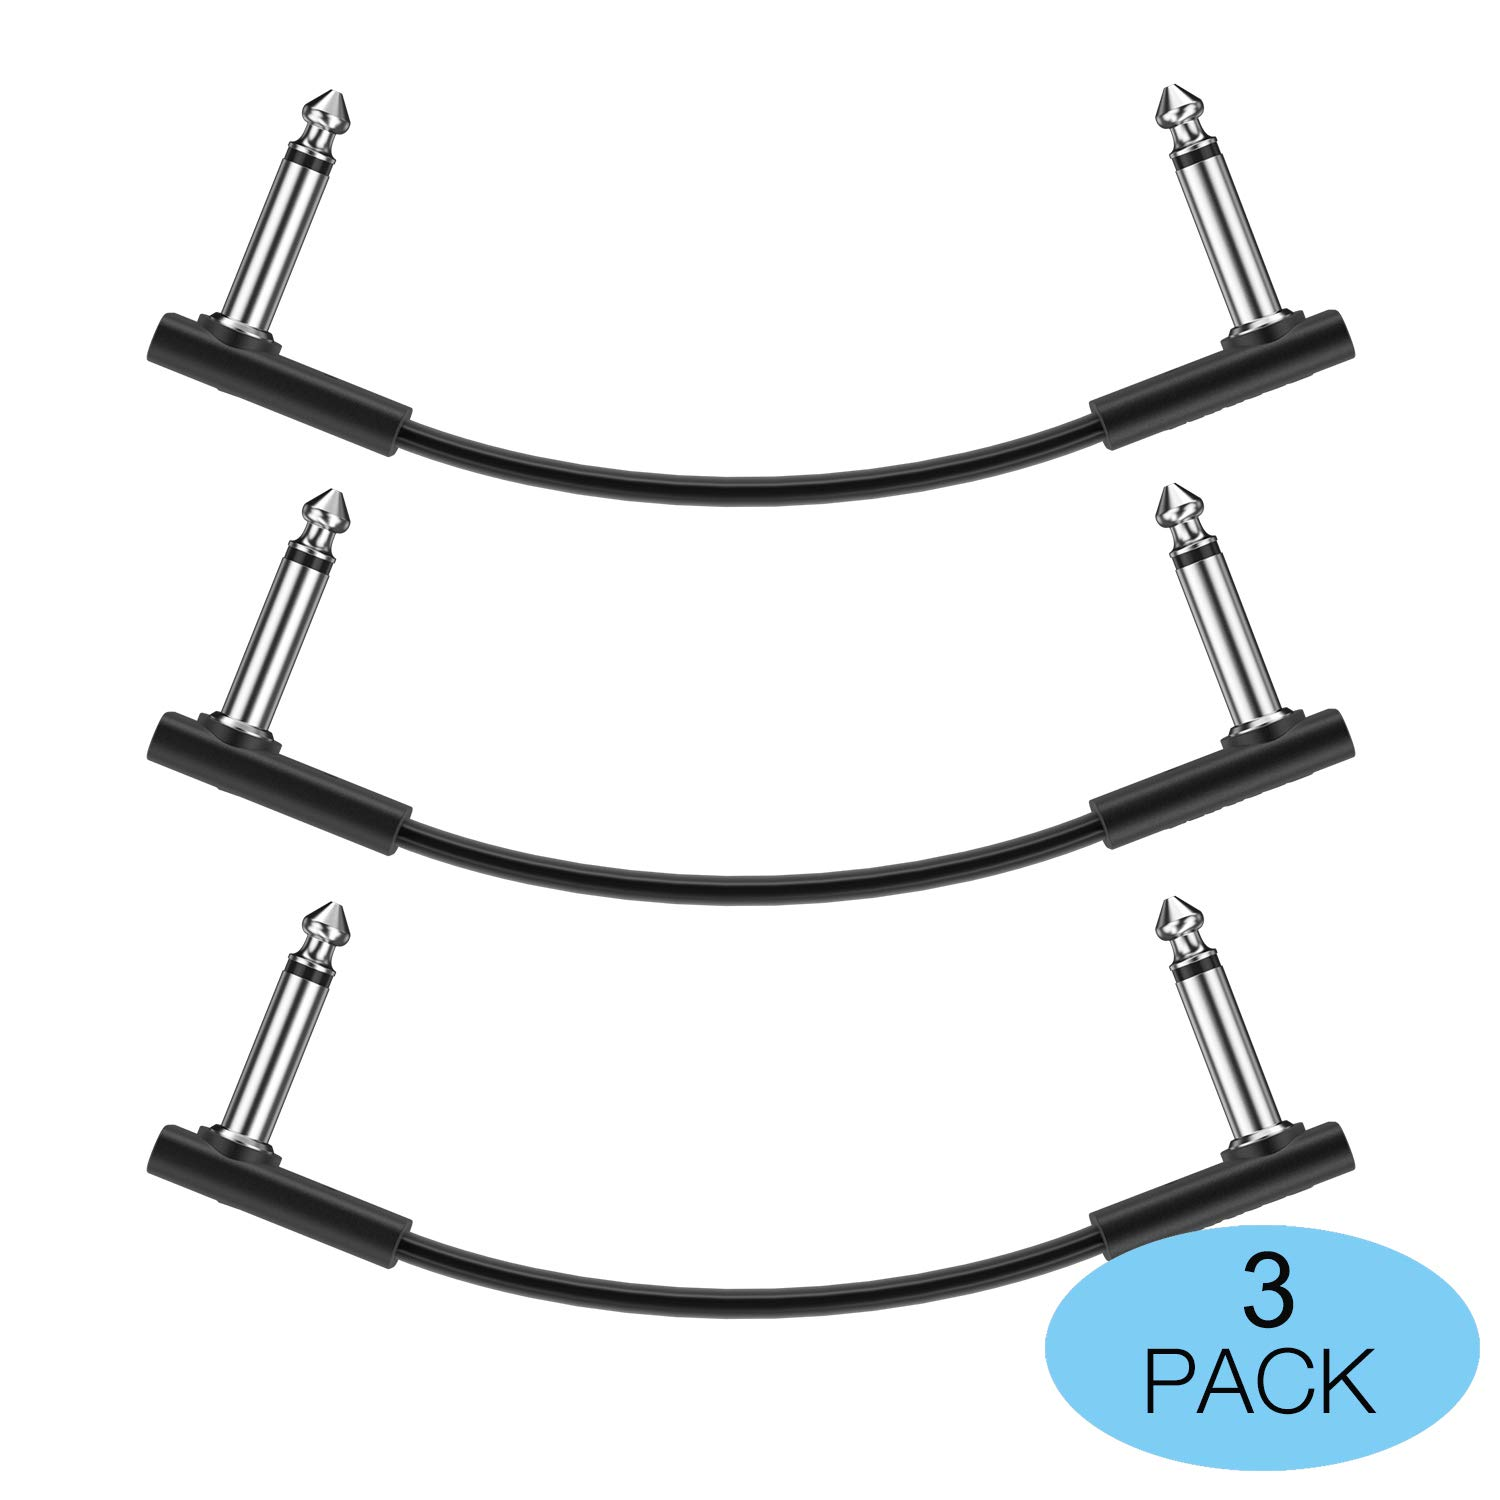 Donner 30CM Guitar Flat Patch Cable Black 6-Pack